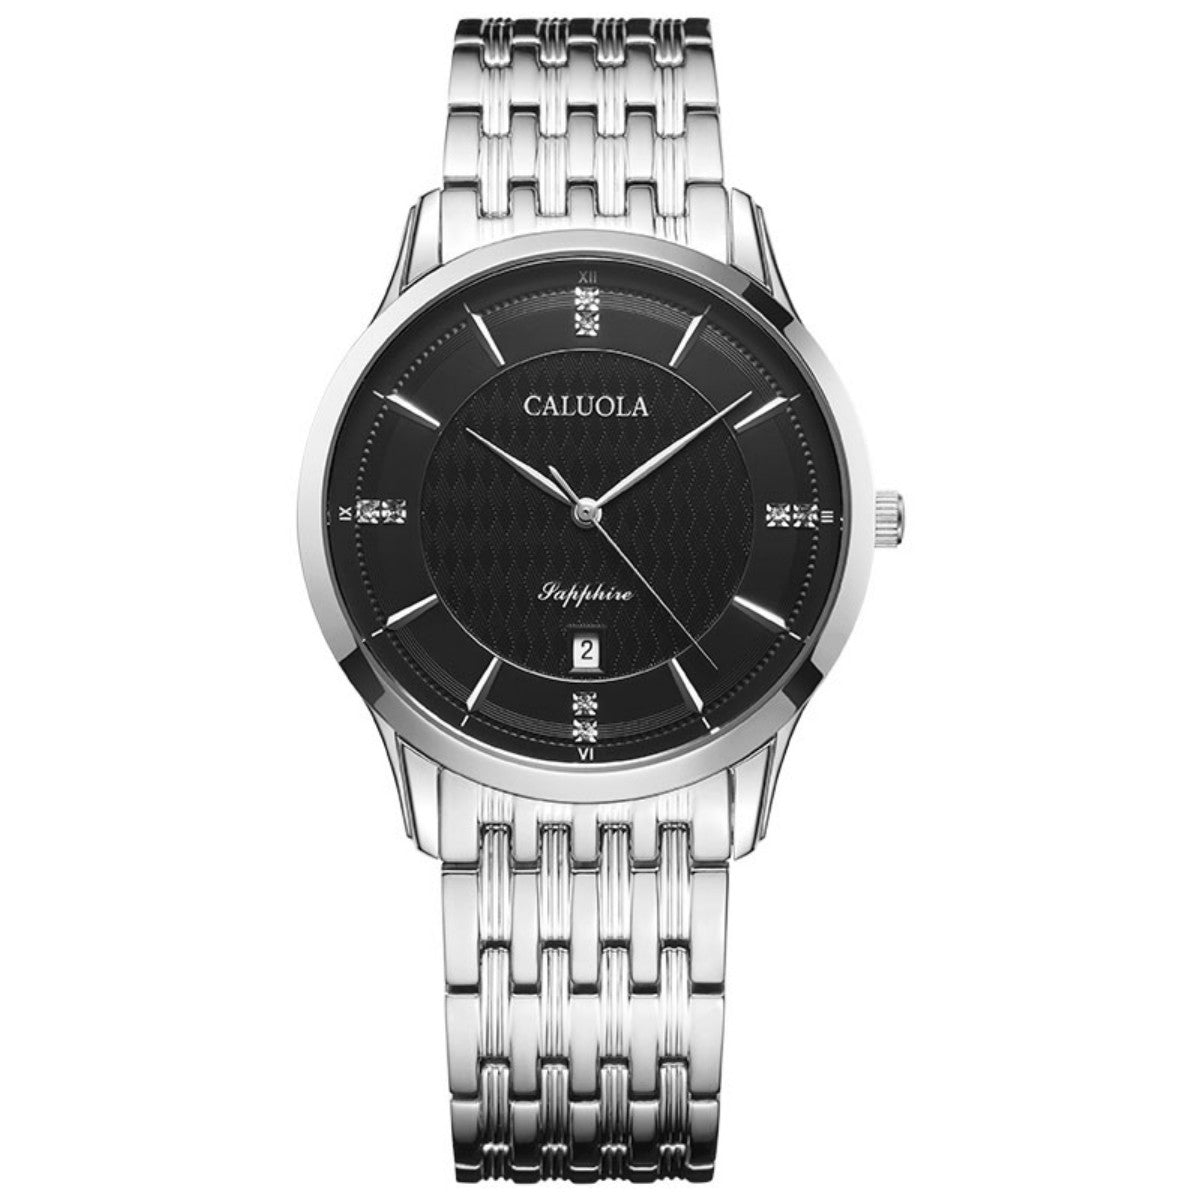 Caluola Quartz Watch With Date Fashion Men Waterproof Sport Watch CA1014G